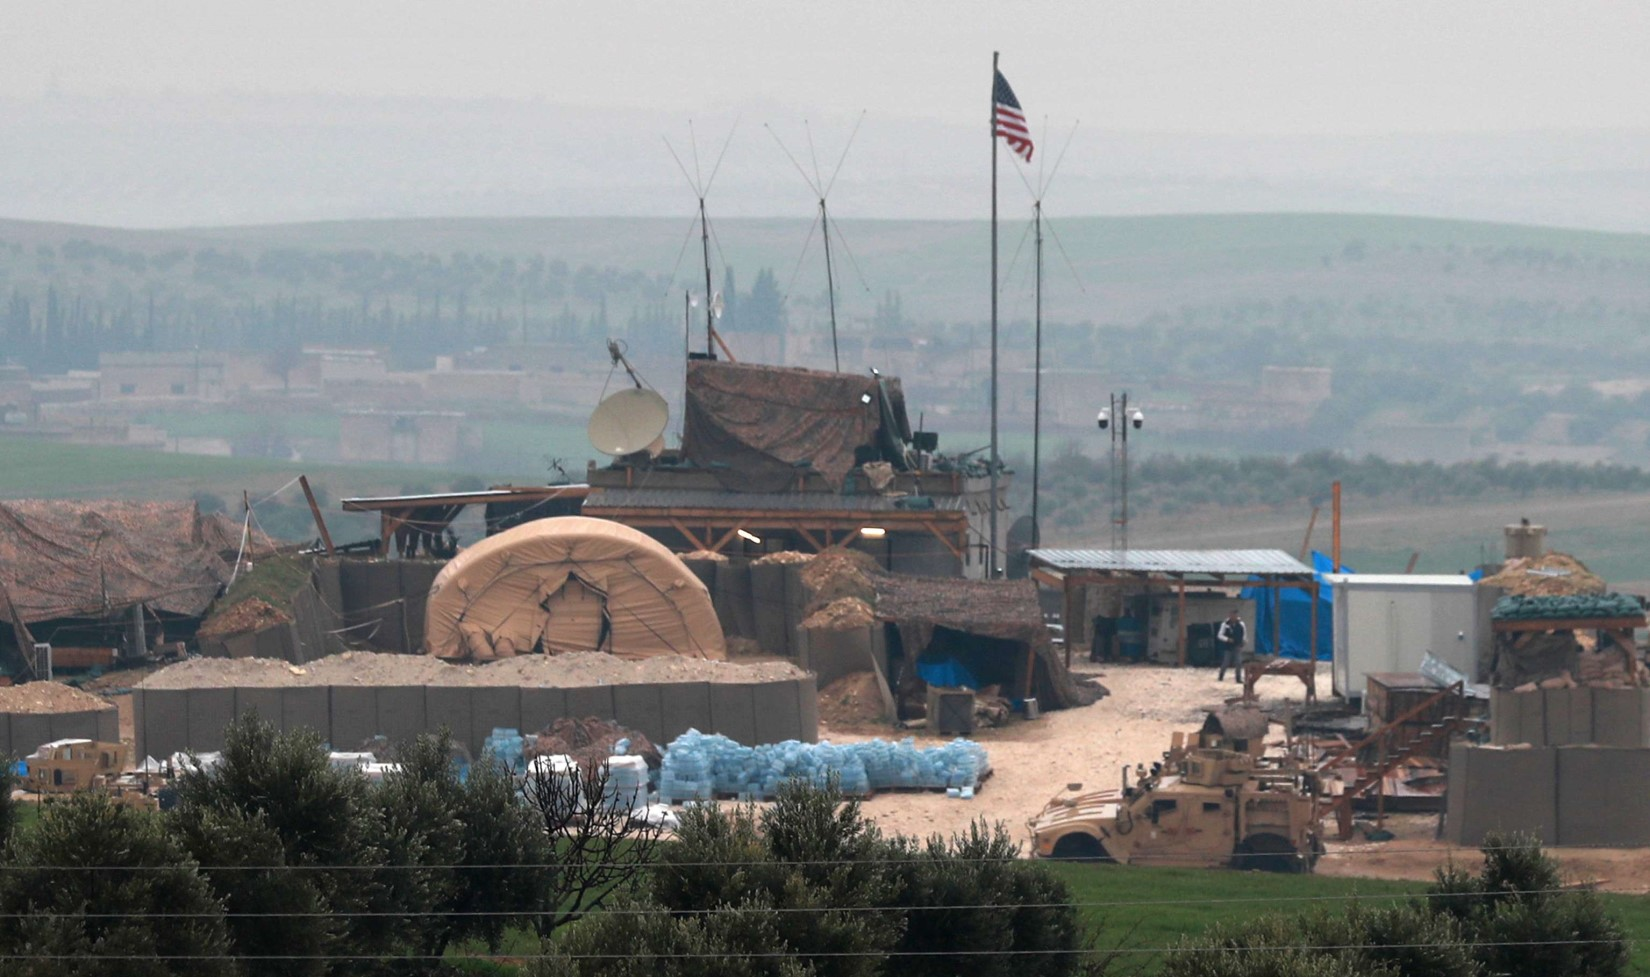 Vehicles and structures of the US-backed coalition forces are seen on the outskirts of the northern Syrian town of Manbij on December 26, 2018. (AFP)